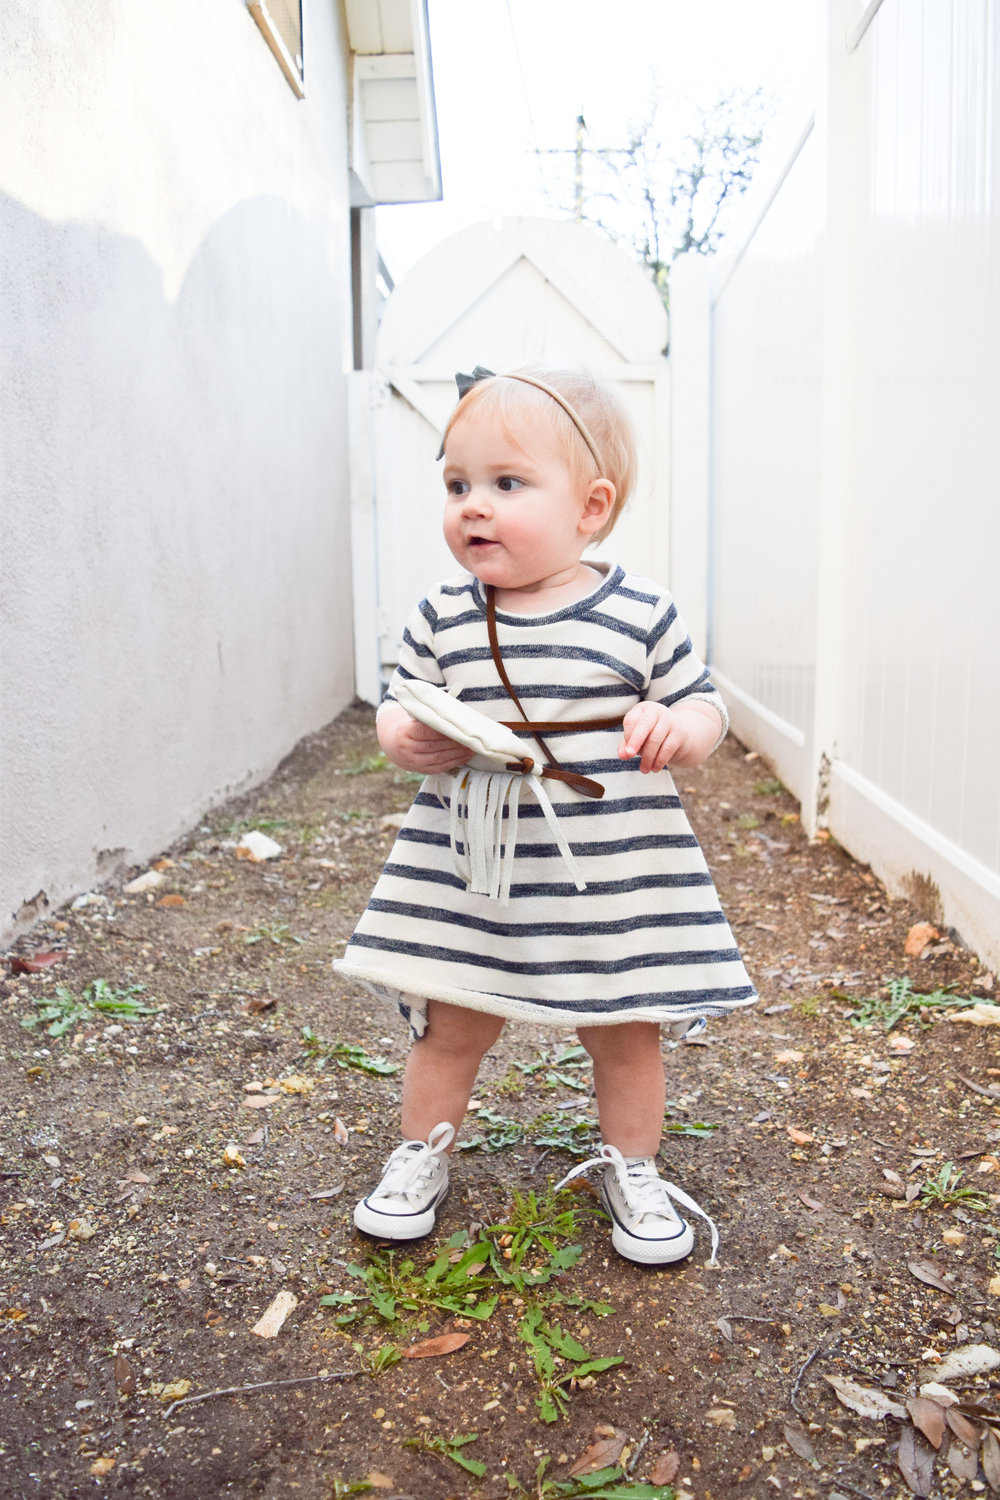 BABY FASHION | Navy + Cream Striped Terry Cloth Baby Dress - Perfectly Paisley Shop on Etsy